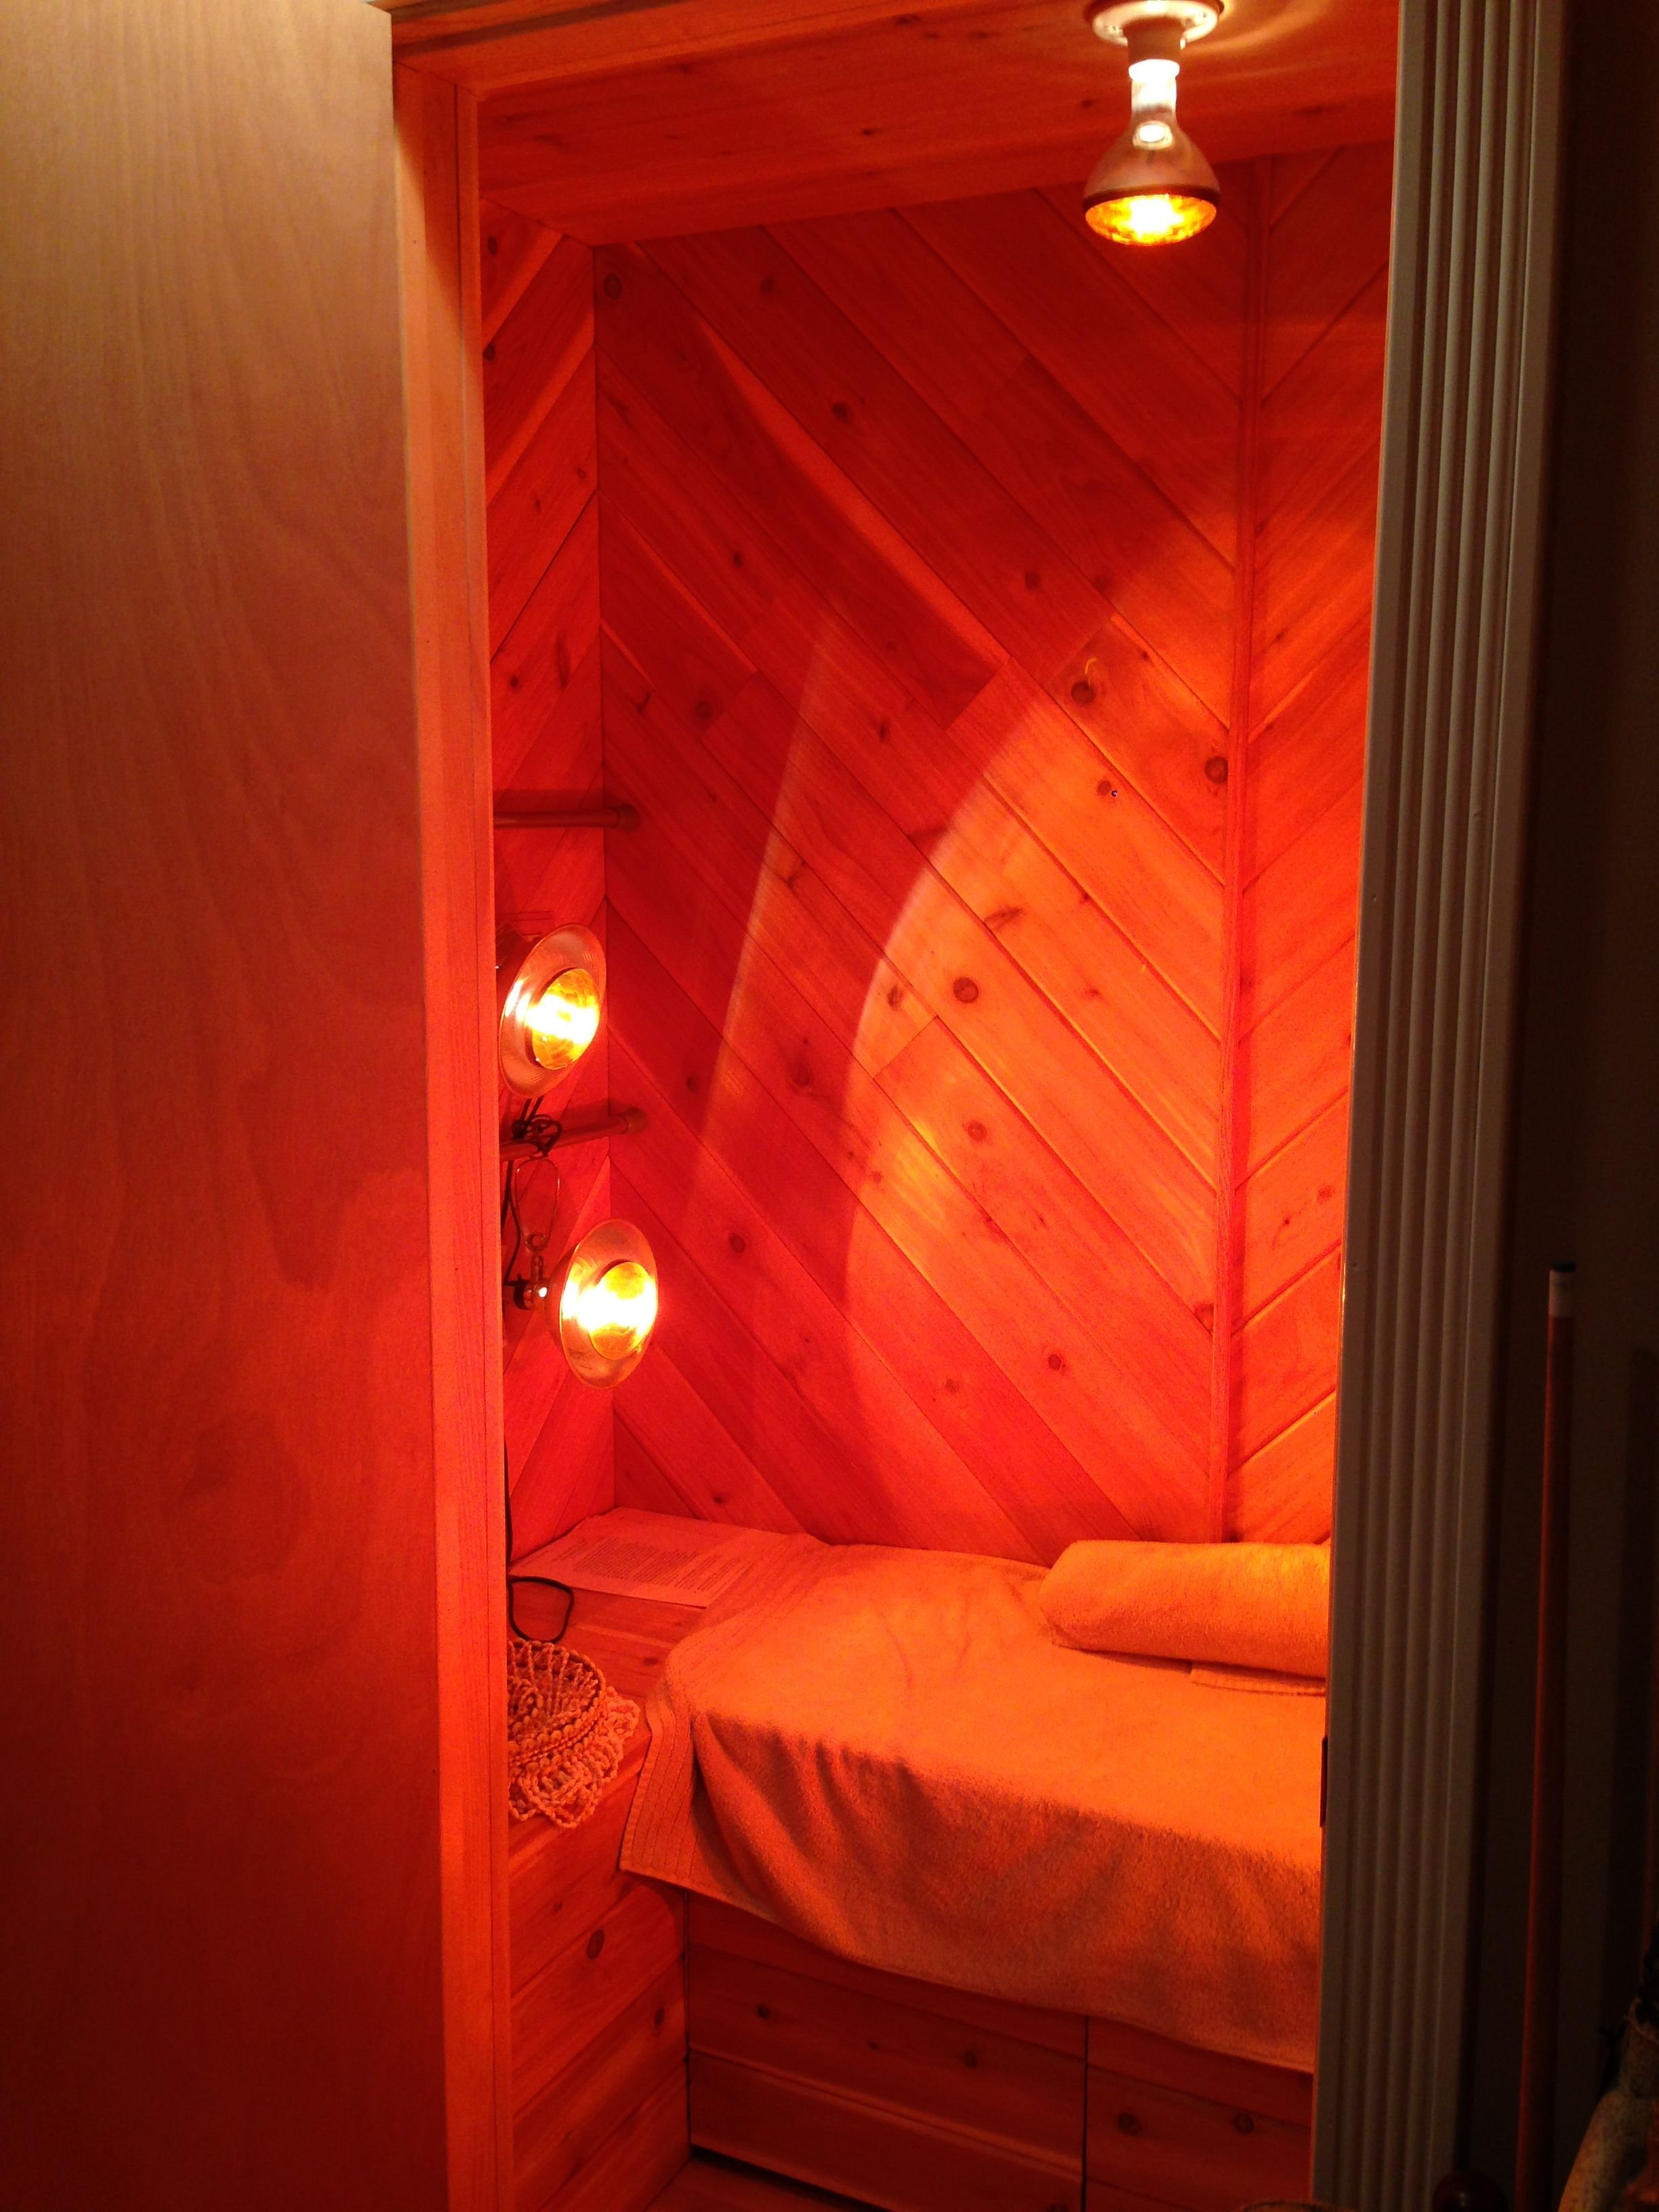 Basement Closet Turned To Near Infrared Sauna Room; Meditation, Healing.